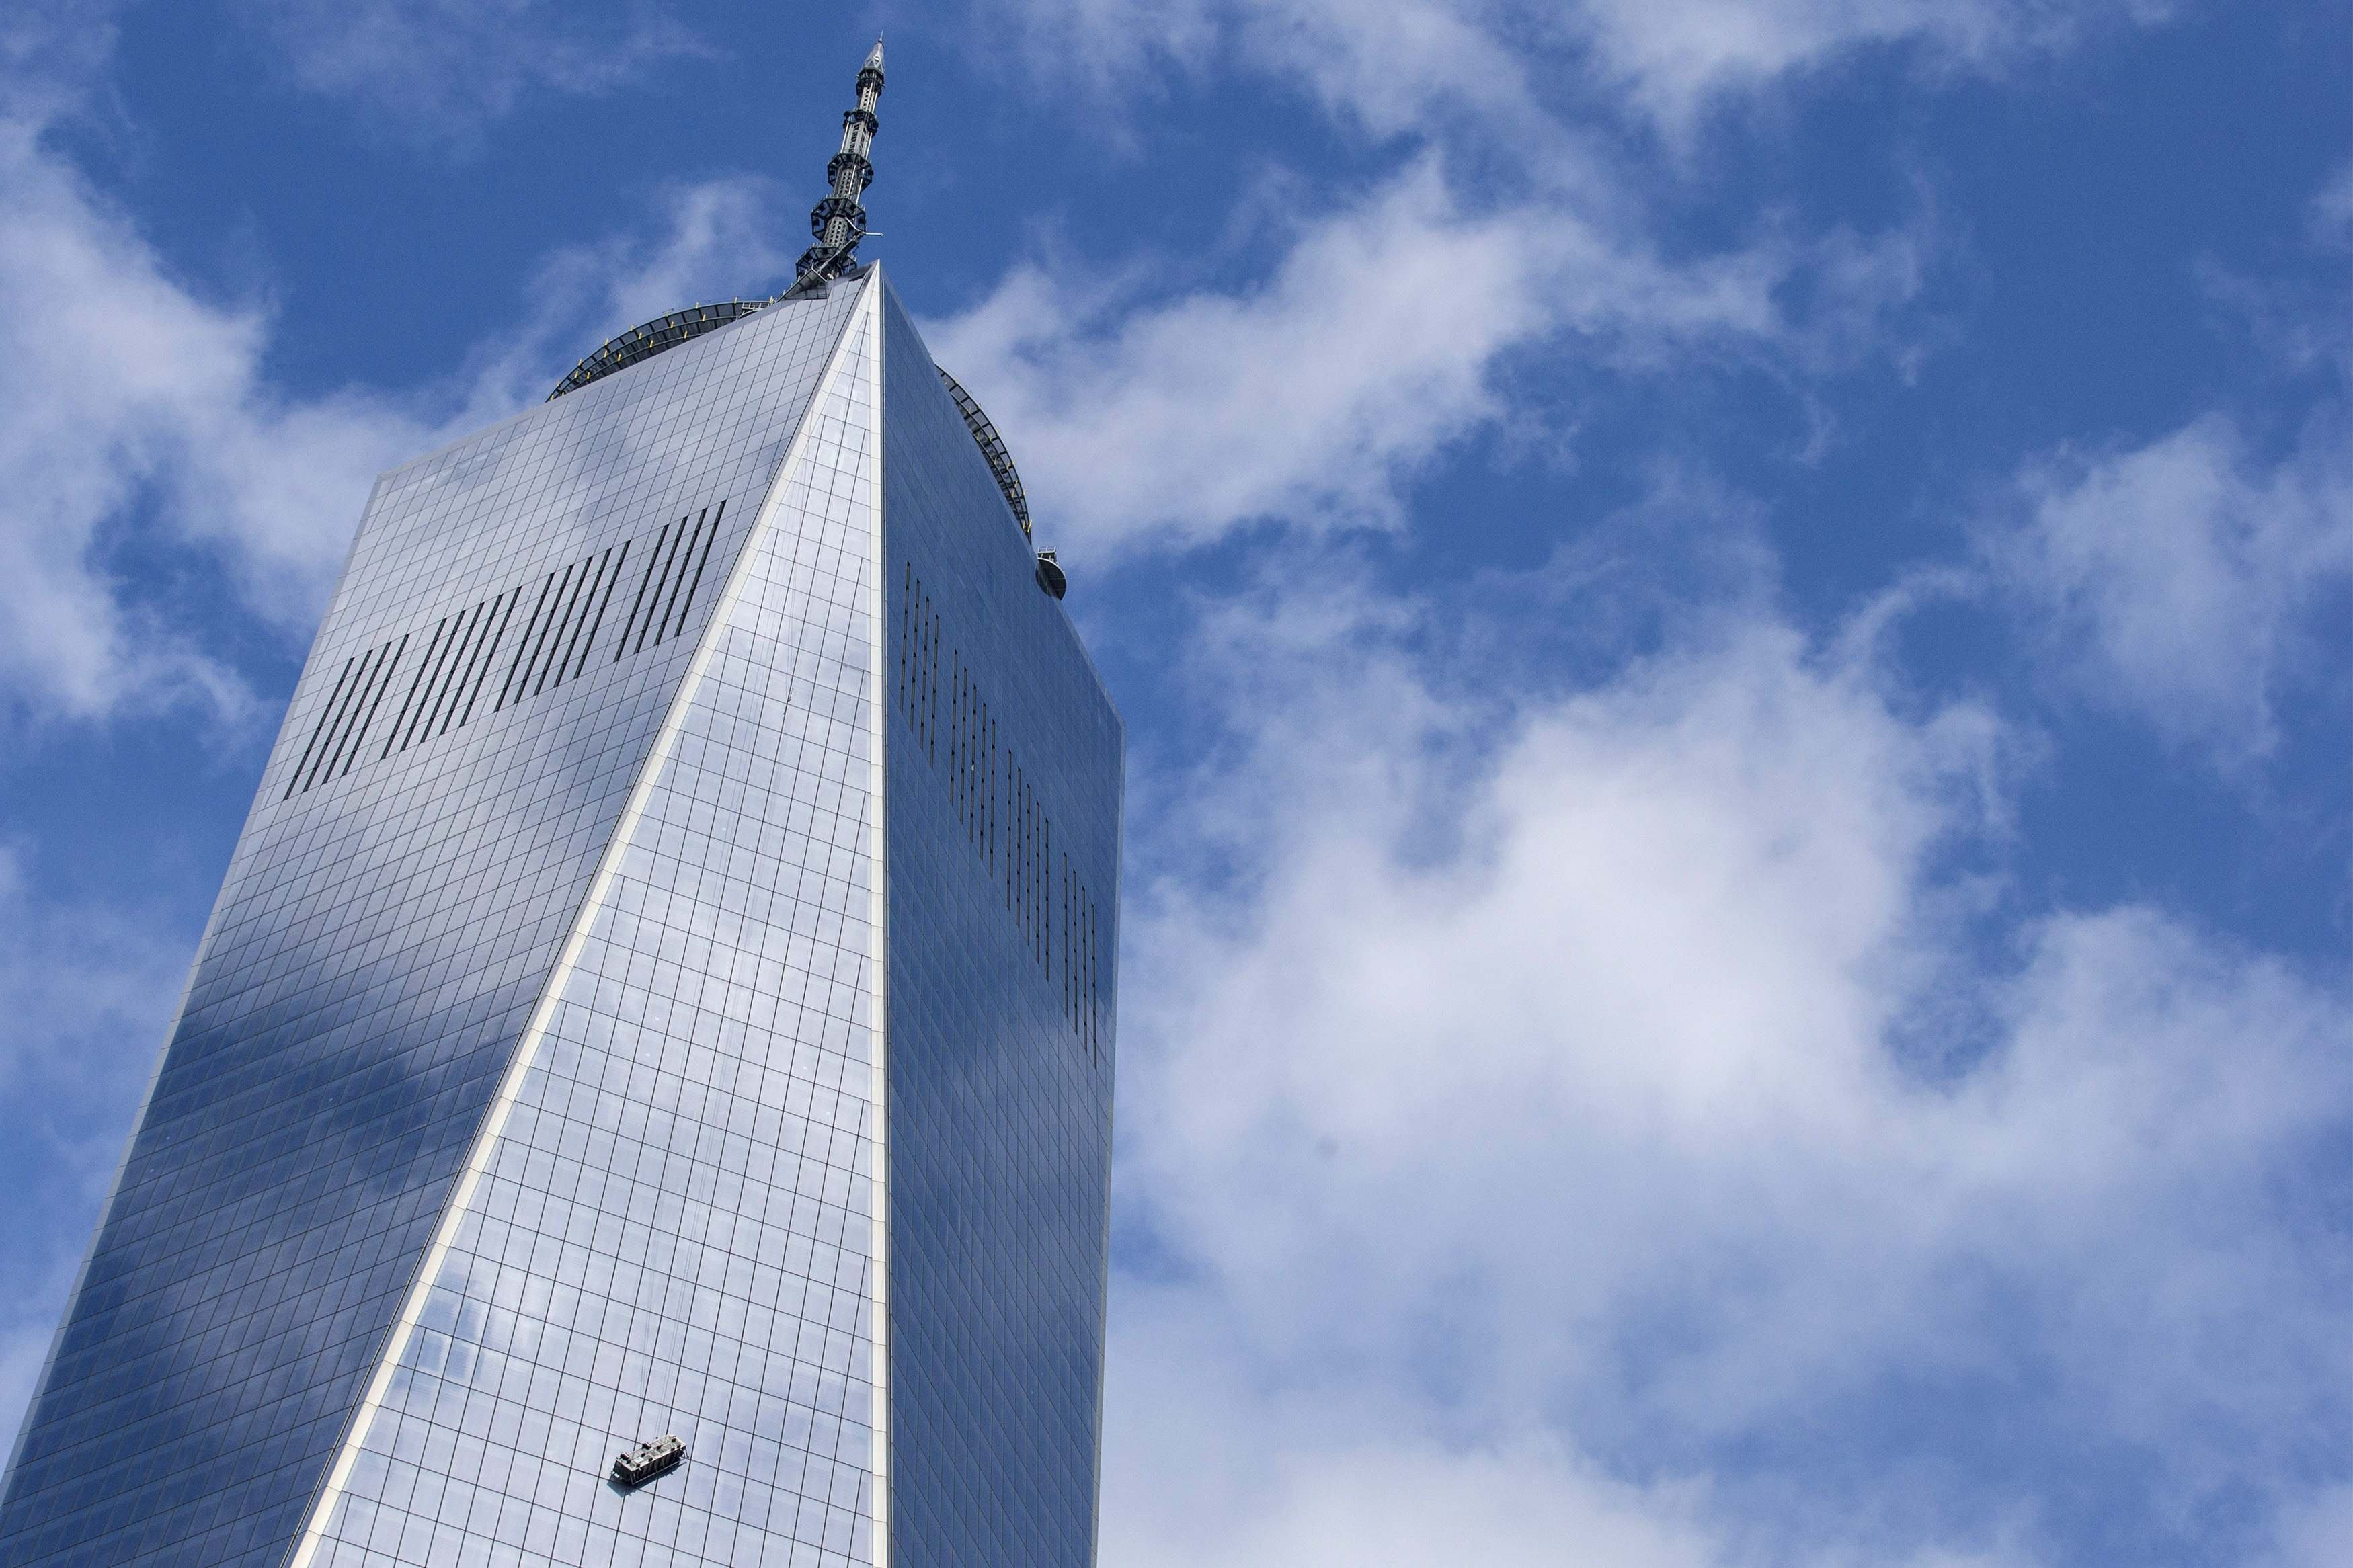 Stranded window washers hang on the side of One World Trade Center in New York on Nov. 12, 2014.